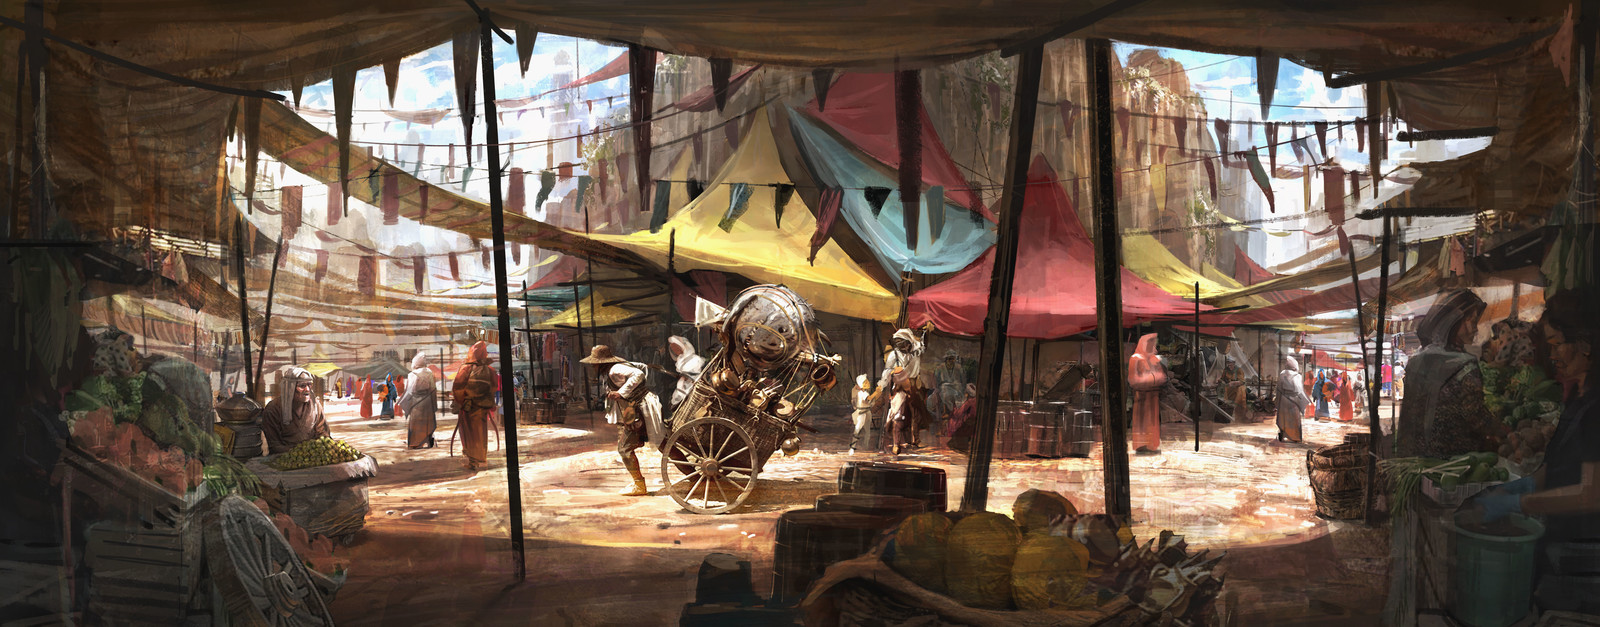 Sun Empire: Plateau Marketplace